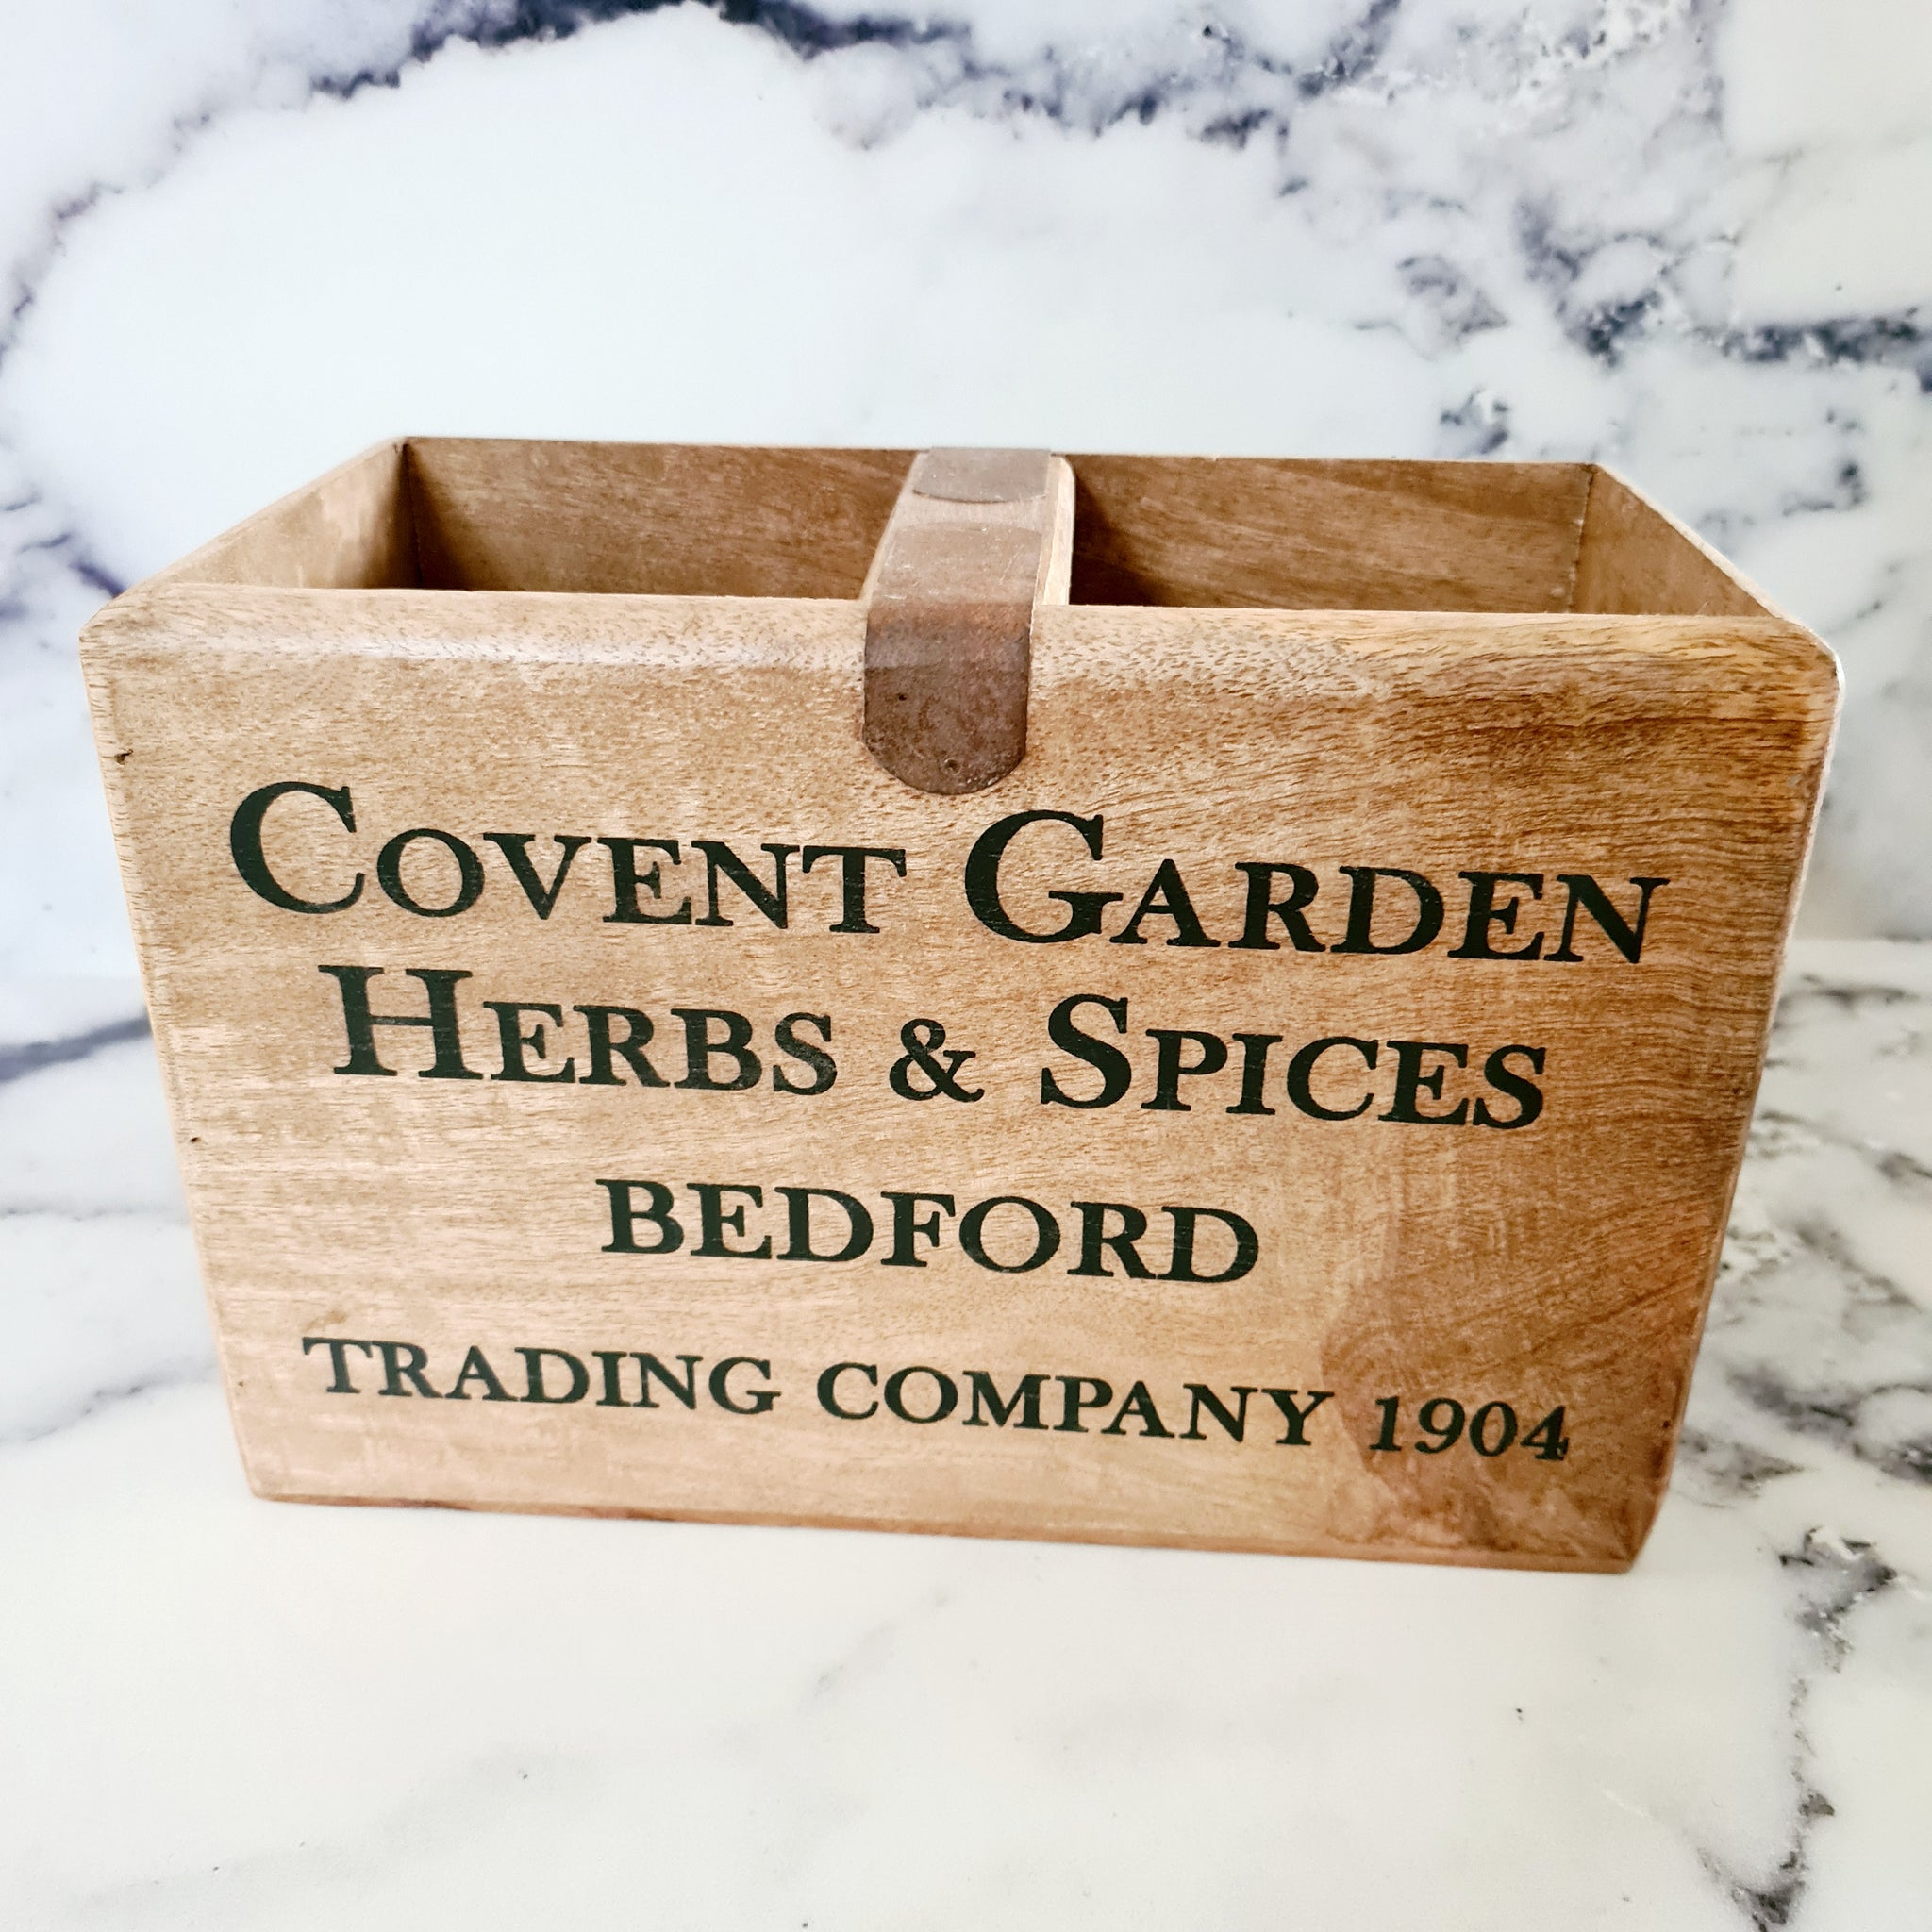 Covent Garden wooden crate